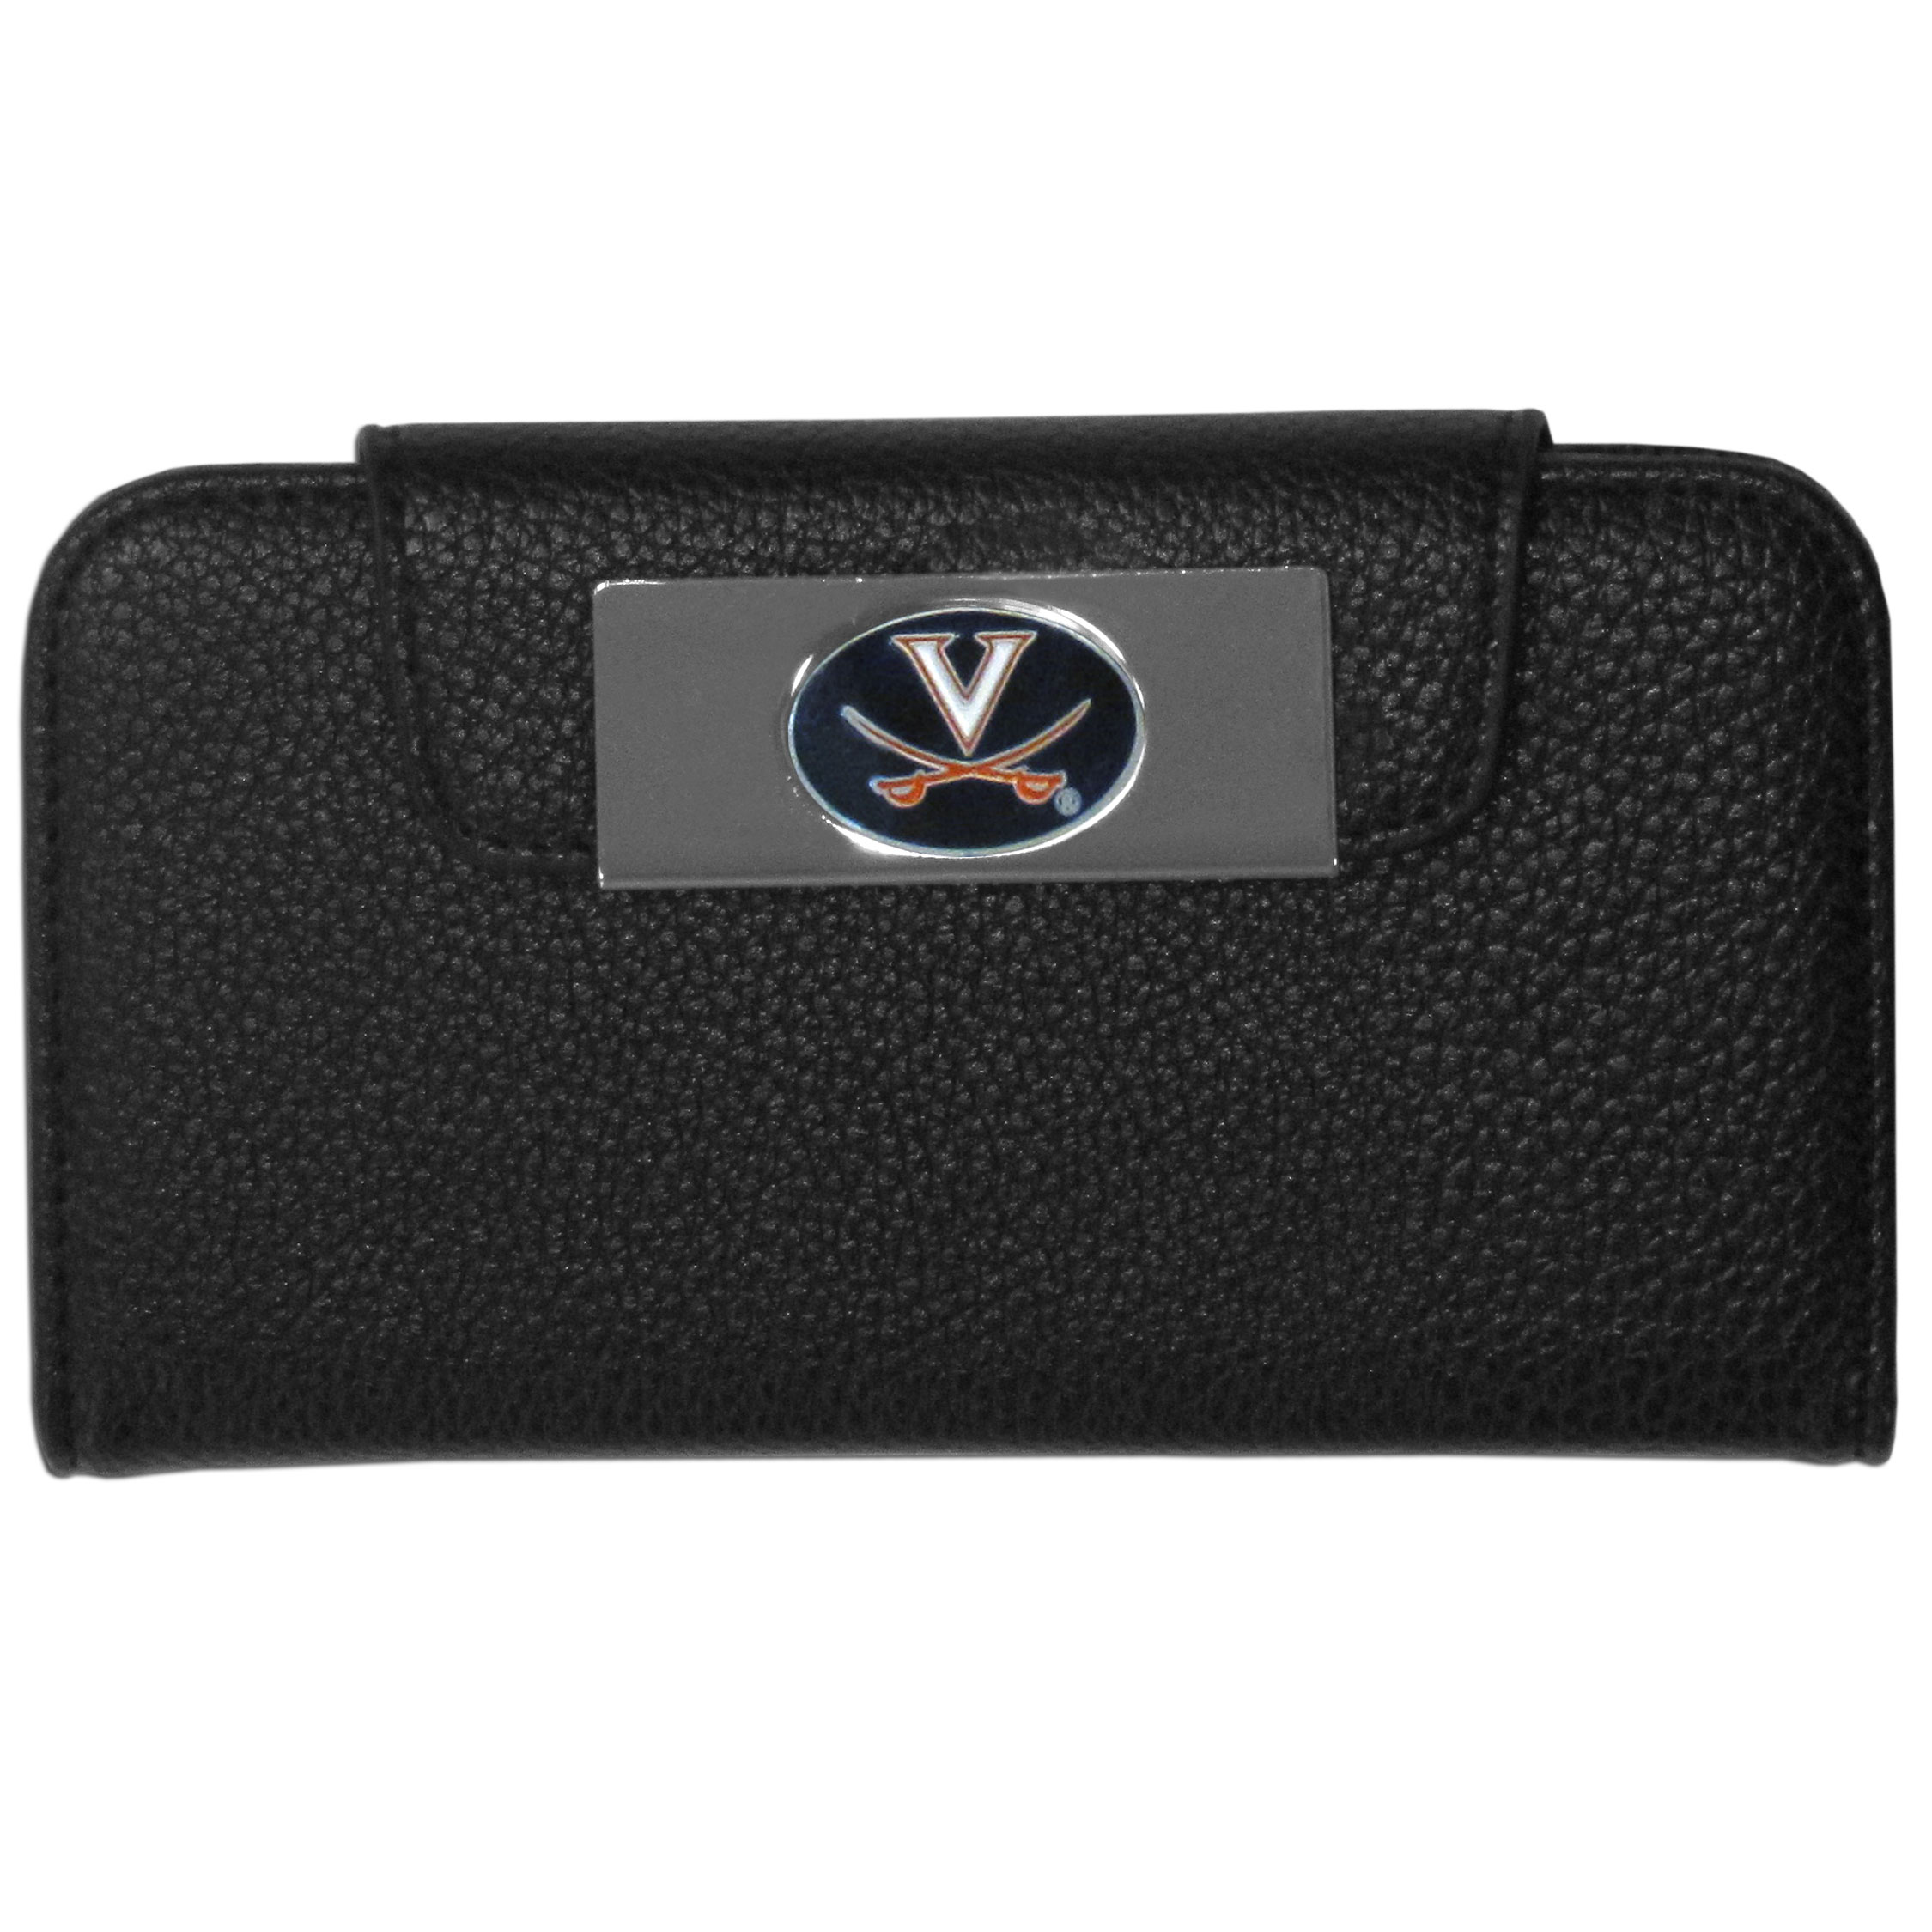 Virginia Cavaliers Samsung Galaxy S4 Wallet Case - This new & wildly popular case is ideal for those who like to travel light! The stylish case has an inner hard shell that securely holds your phone while allowing complete access to the phone's functionality. The flip cover has slots for credit cards, business cards and identification. The magnetic flip cover has a metal Virginia Cavaliers emblem on a high polish chrome backing. Fits the Samsung Galaxy S4